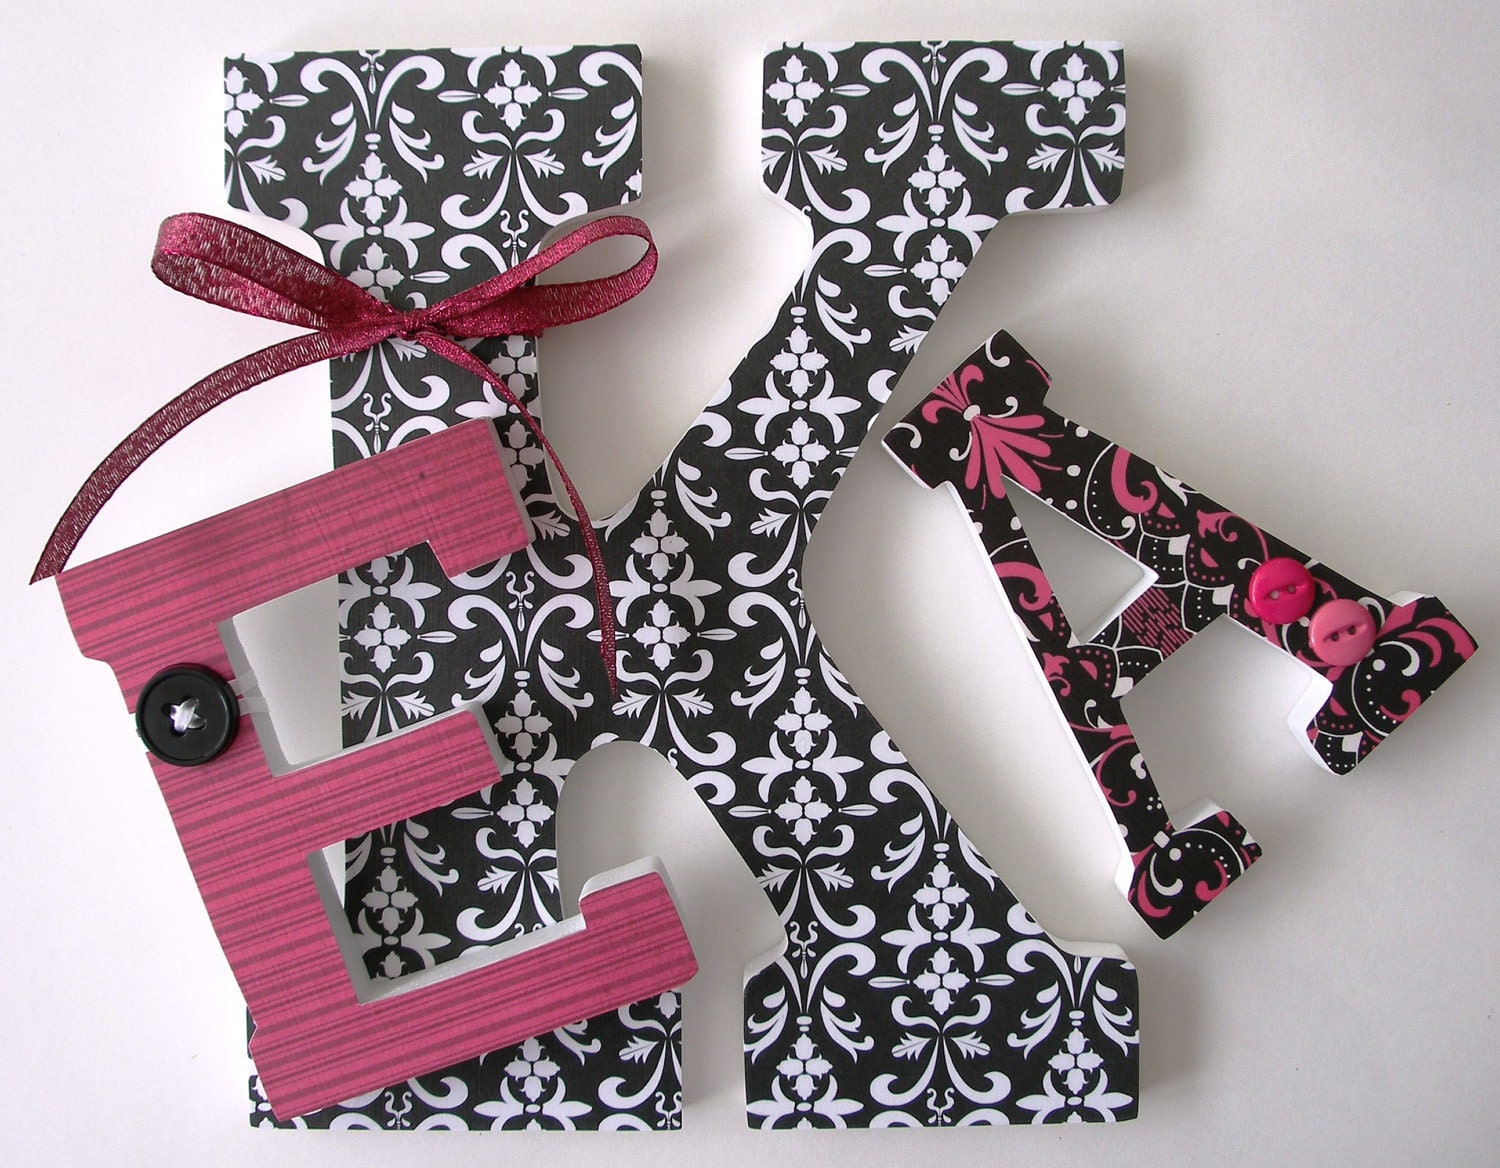 Decoupage Wooden Letters Decorated Wooden Letters